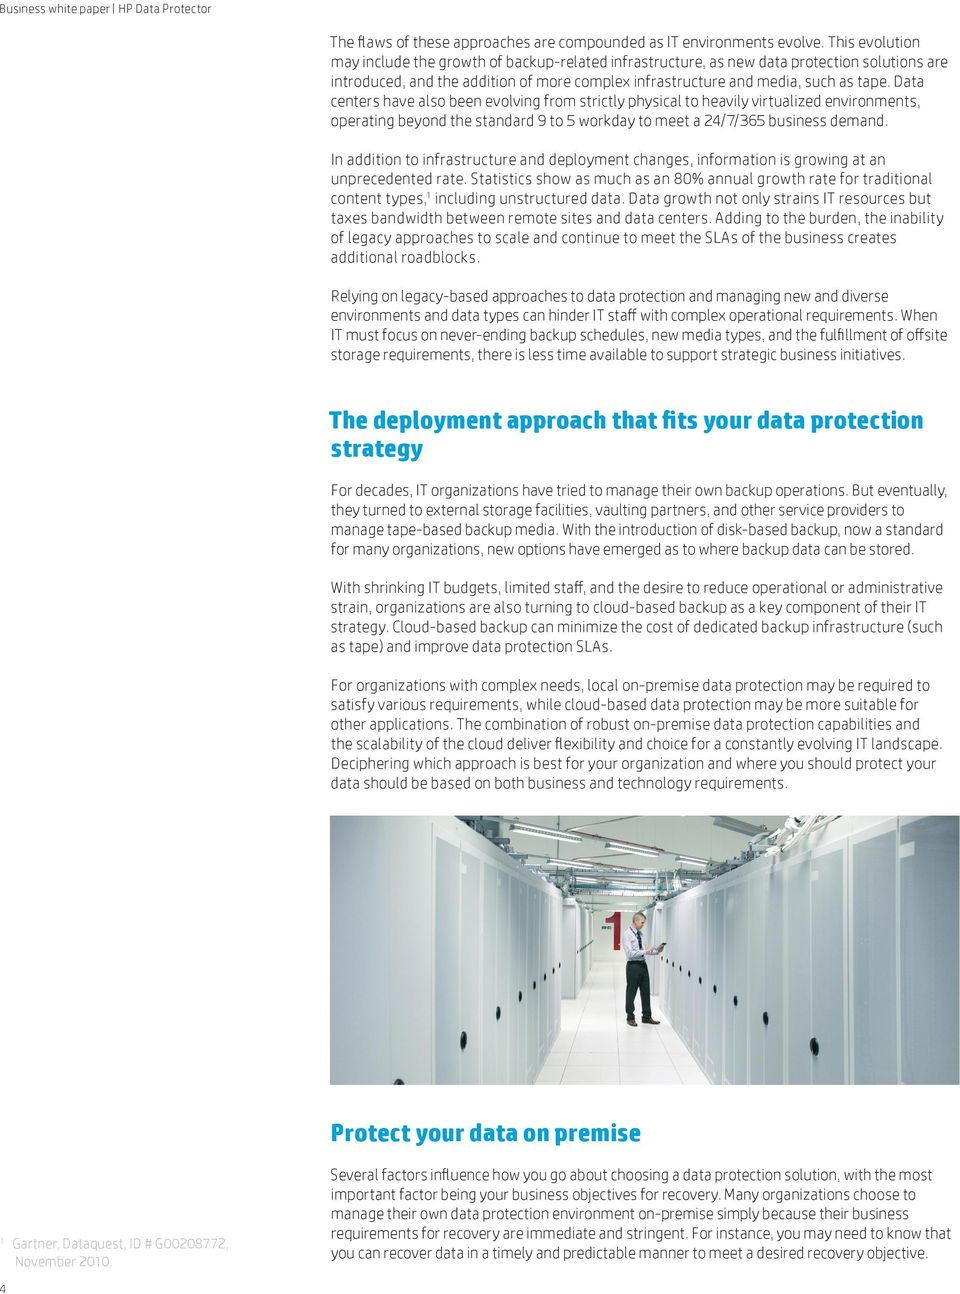 Data centers have also been evolving from strictly physical to heavily virtualized environments, operating beyond the standard 9 to 5 workday to meet a 24/7/365 business demand.